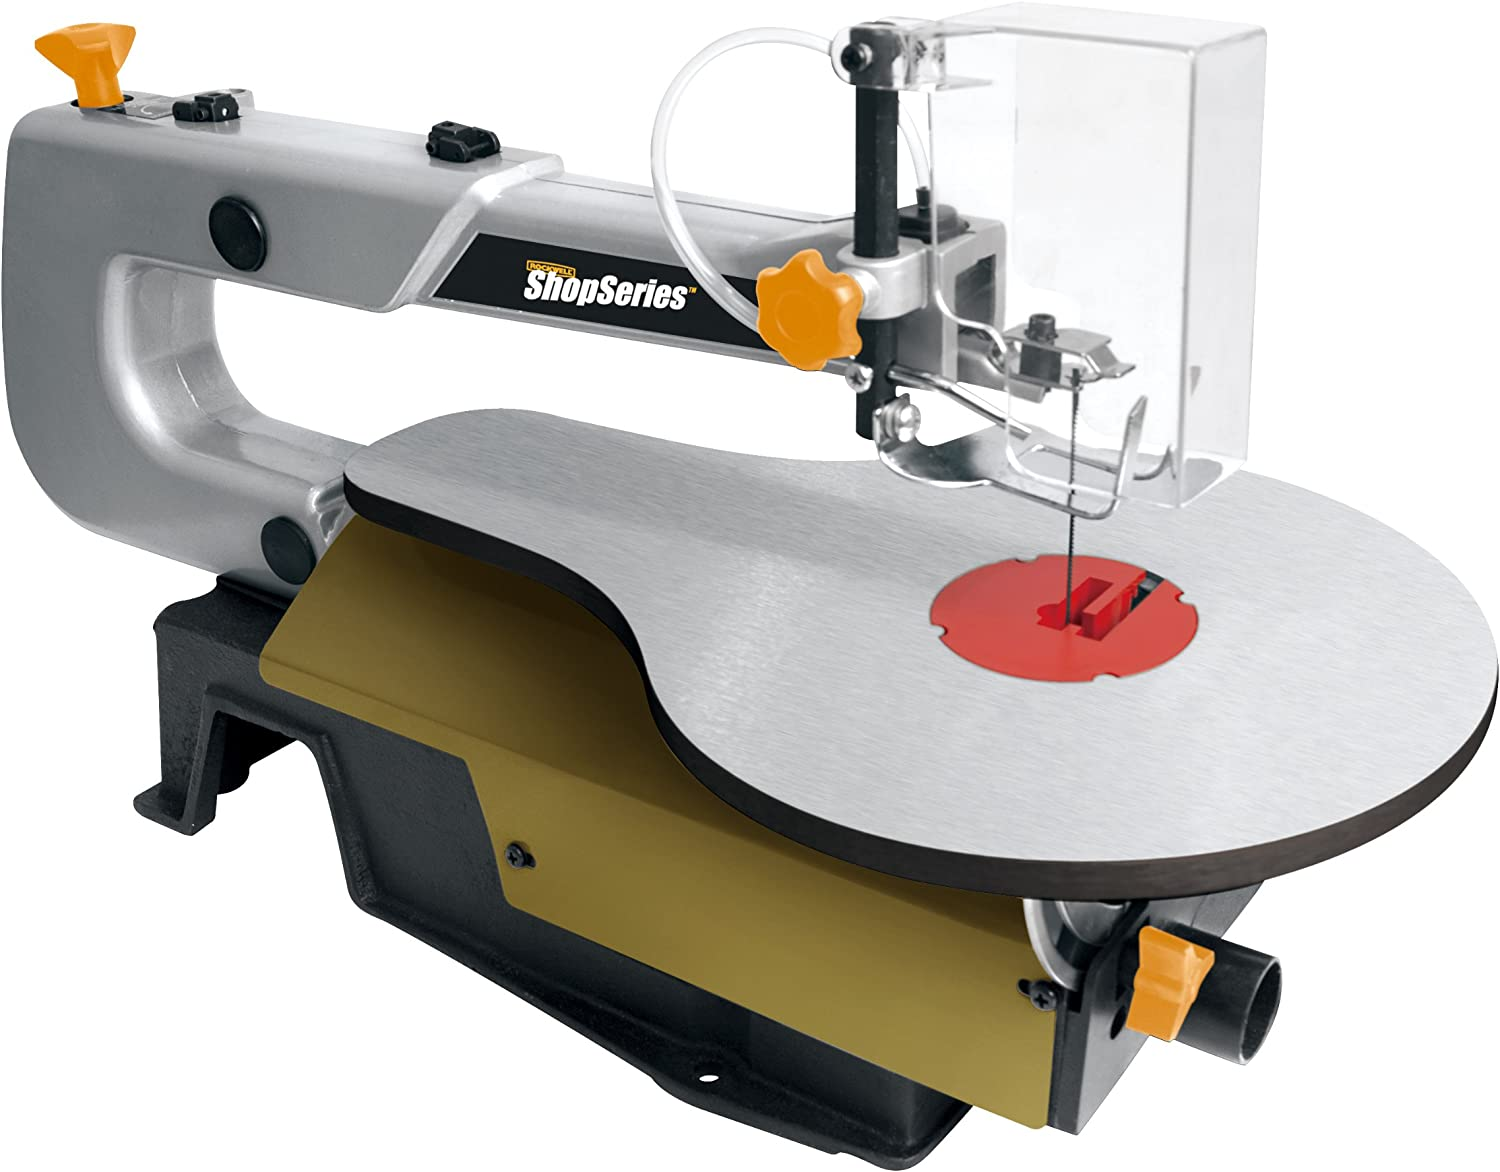 "ShopSeries RK7315 16"" Scroll Saw – Best Runner Up"